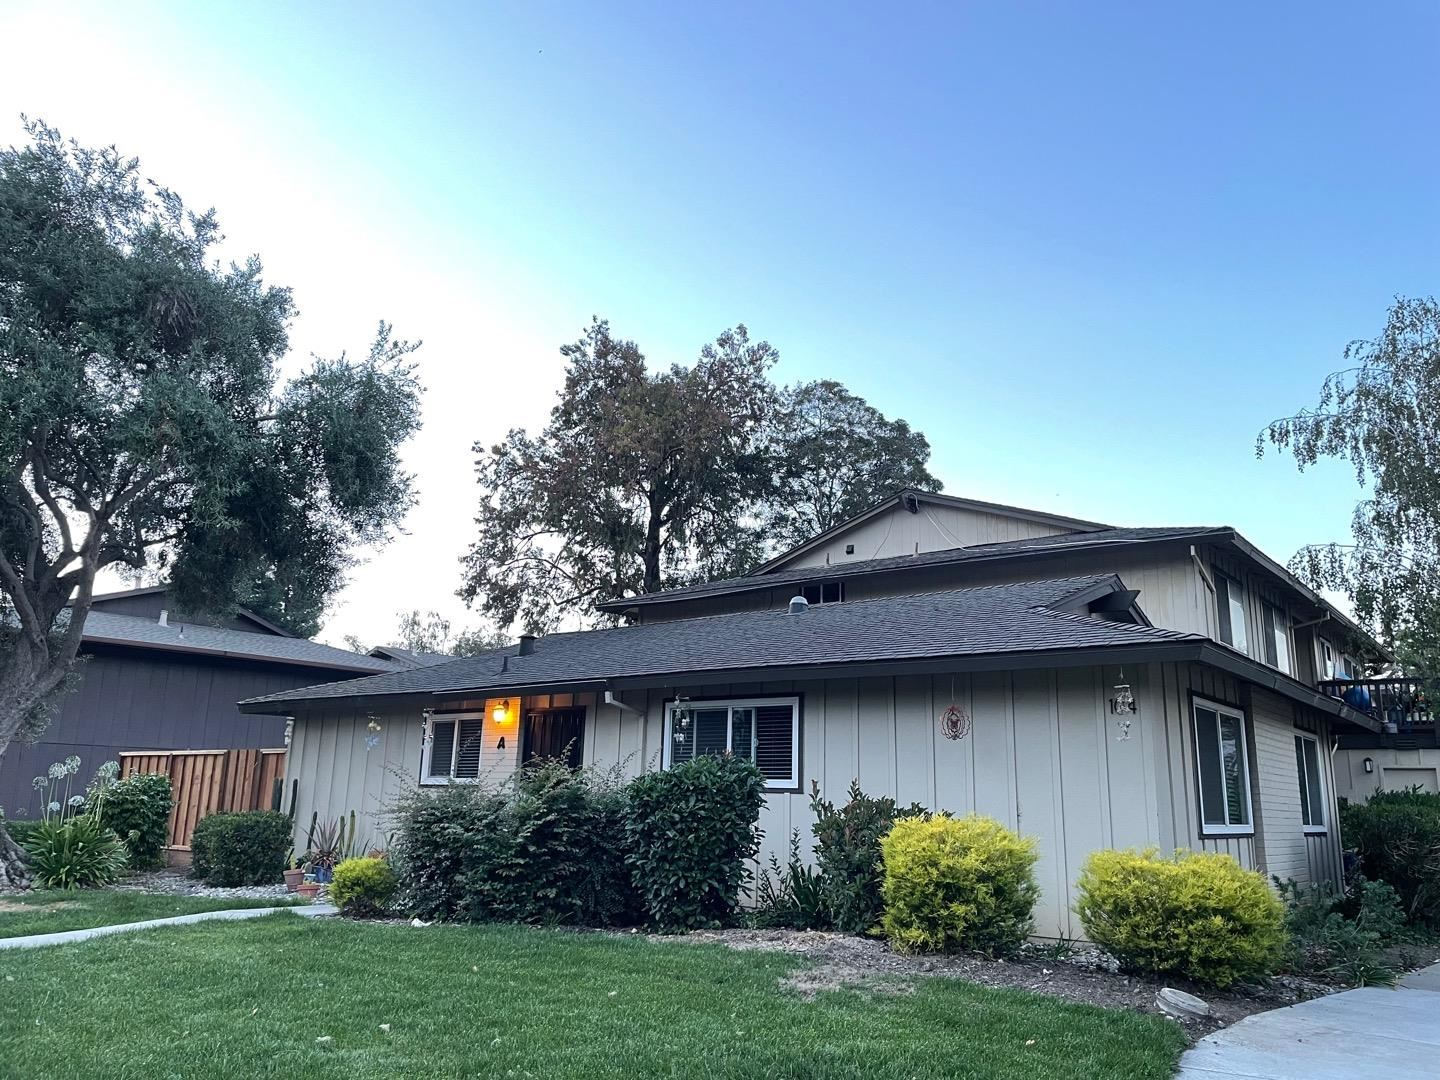 104 East Middlefield Road #A, Mountain View, CA 94043 - MLS#: ML81861619